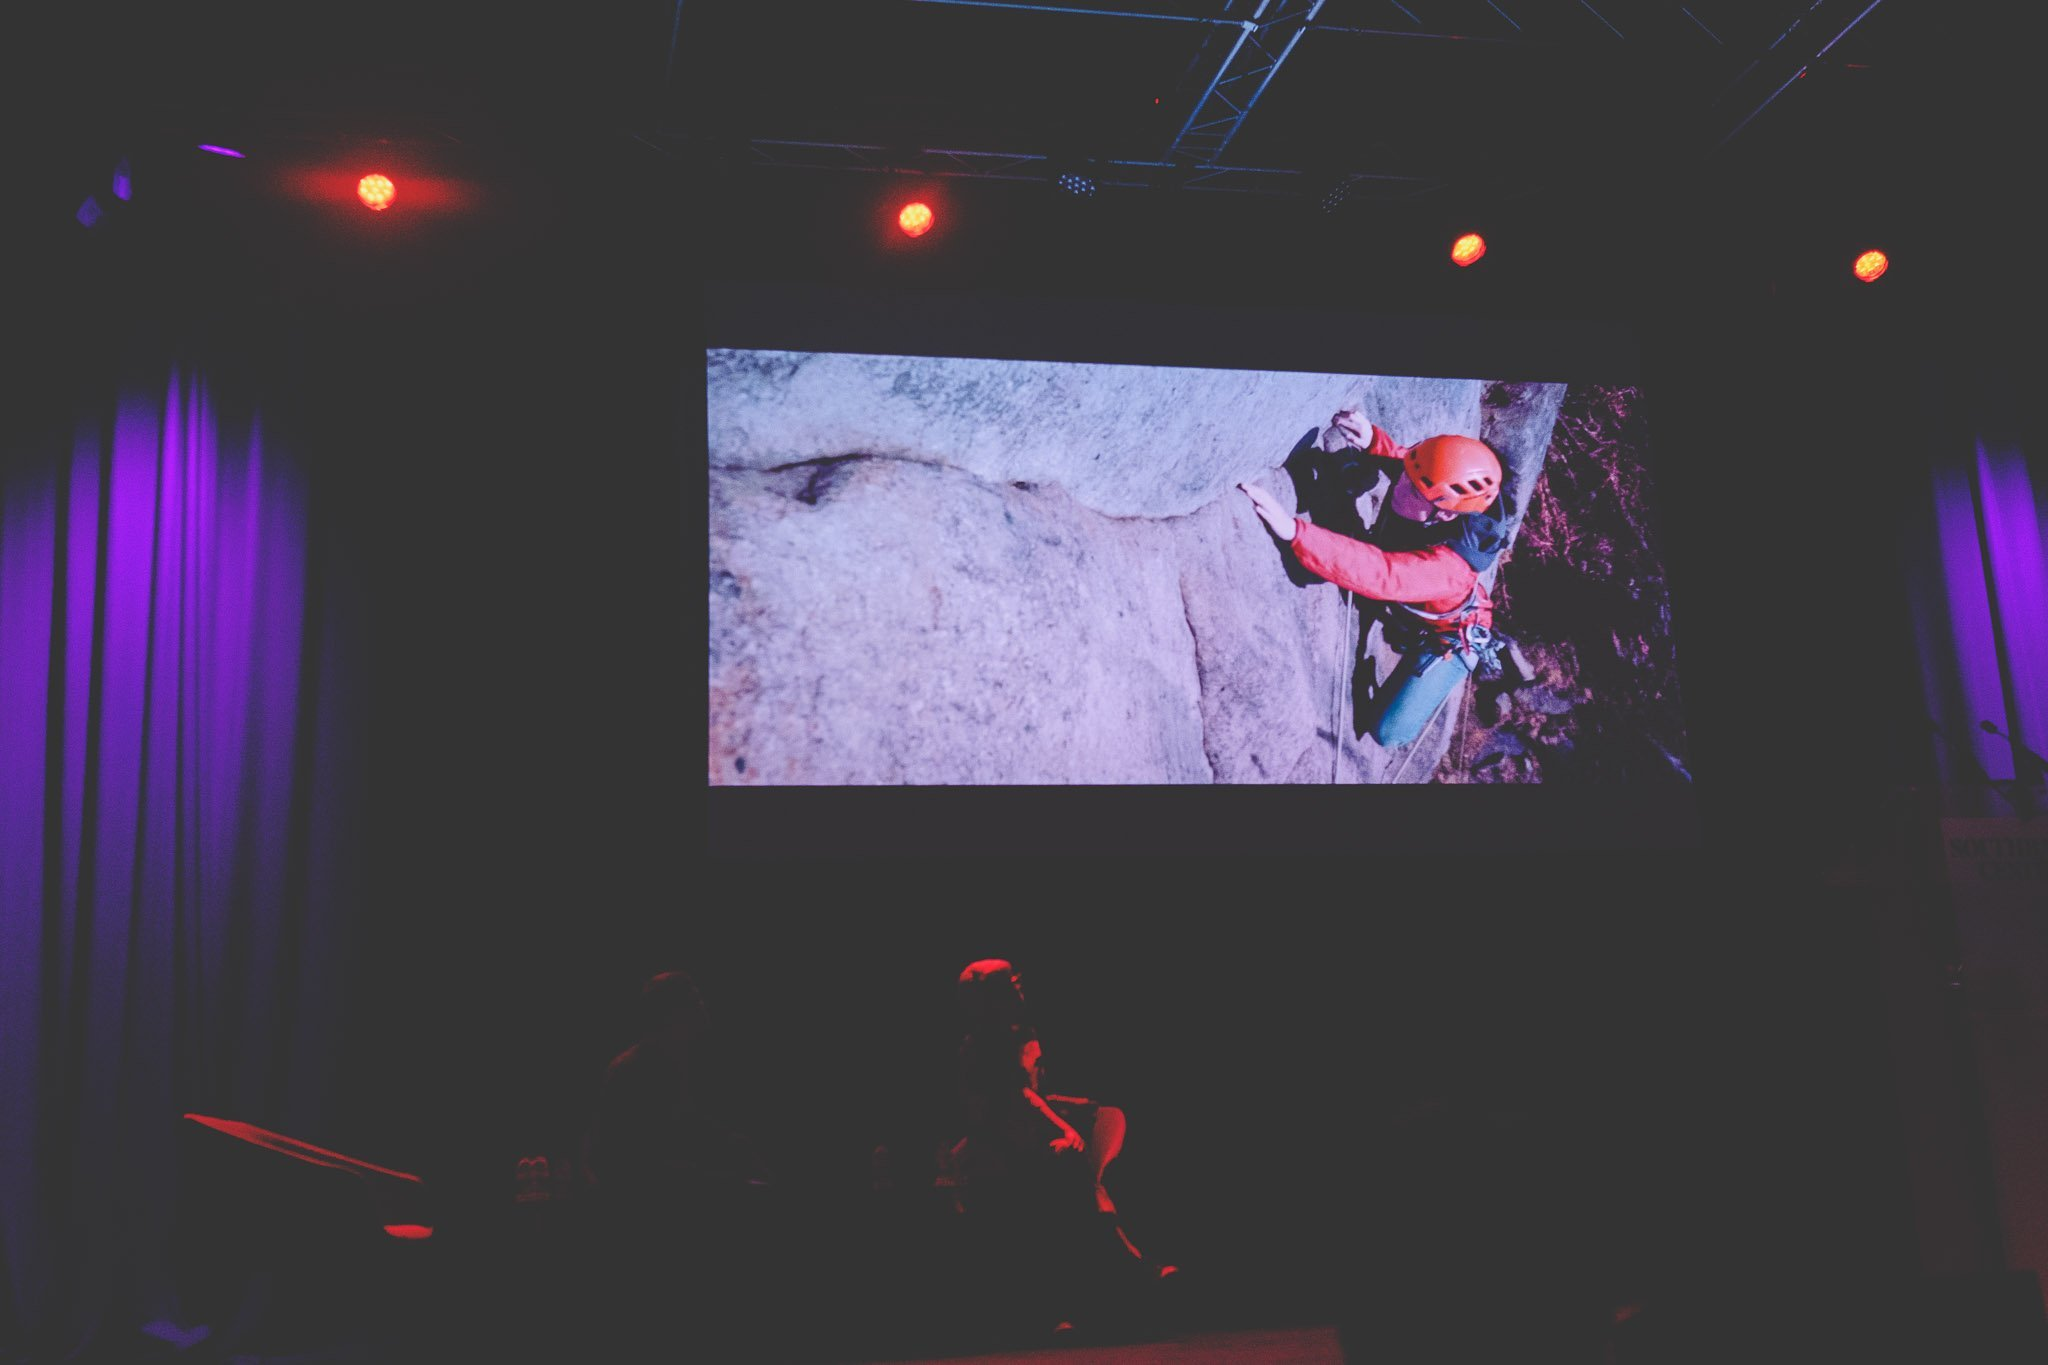 A video performance on a large screen by Poet Helen Mort on stage at the Southbank Centre London